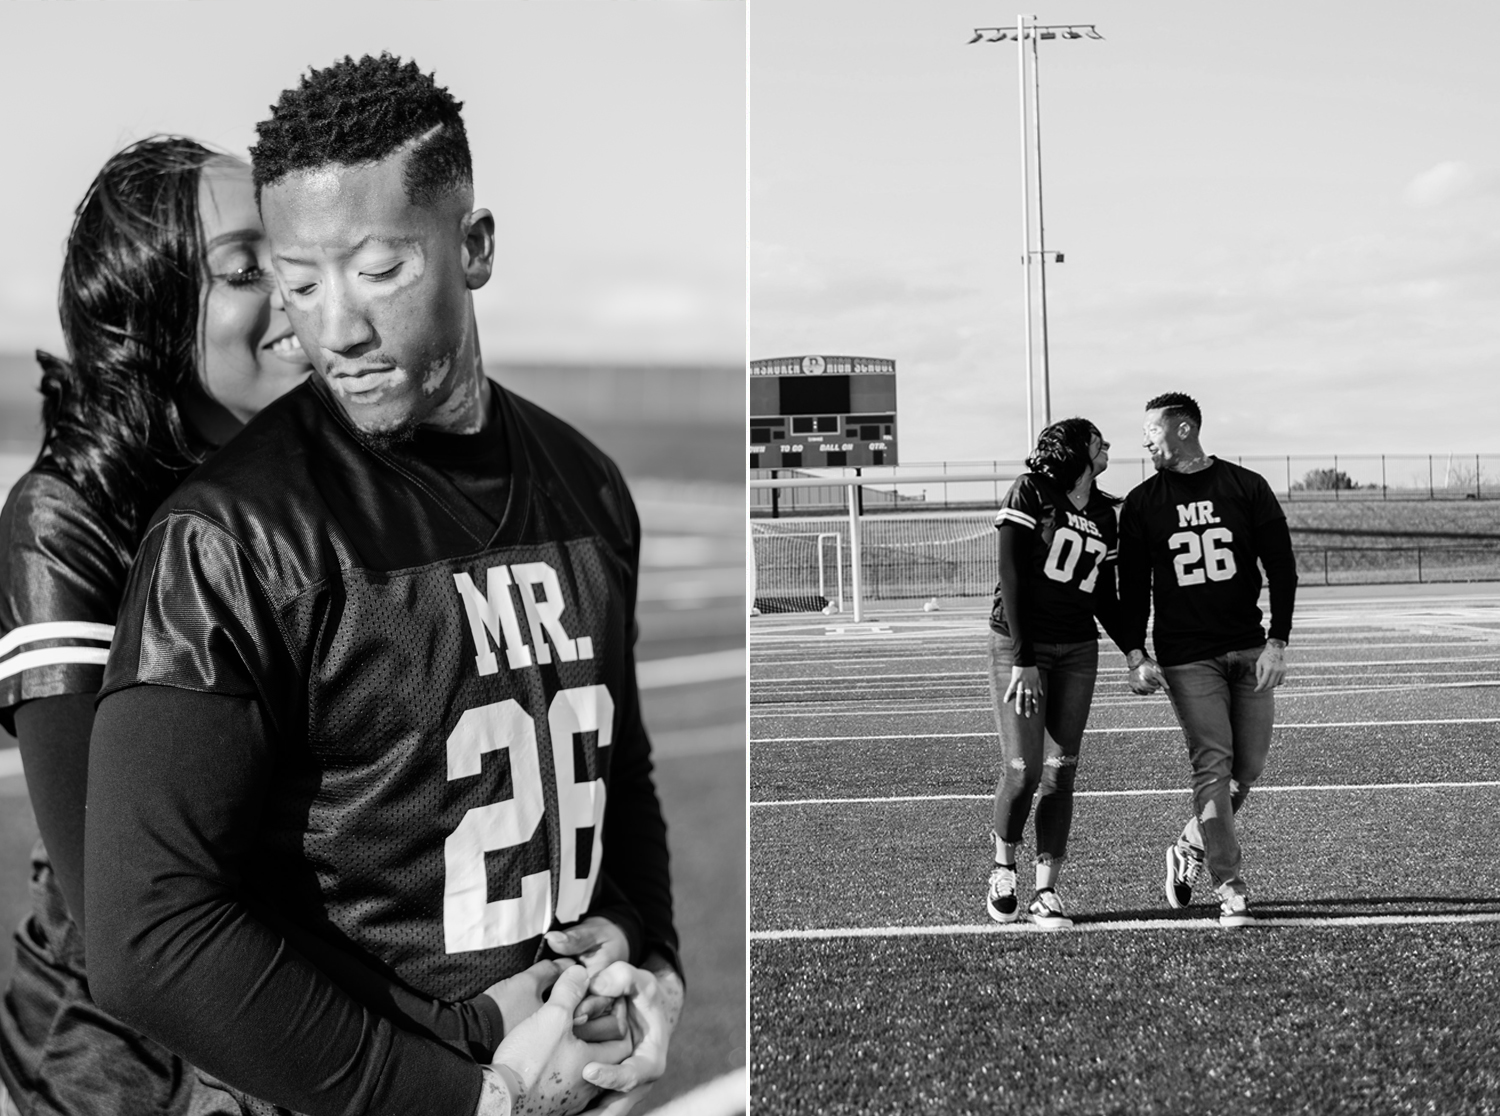 Black couple walking football field with 07 and 26 on front of jerseys. By Tonjanika Smith Photography